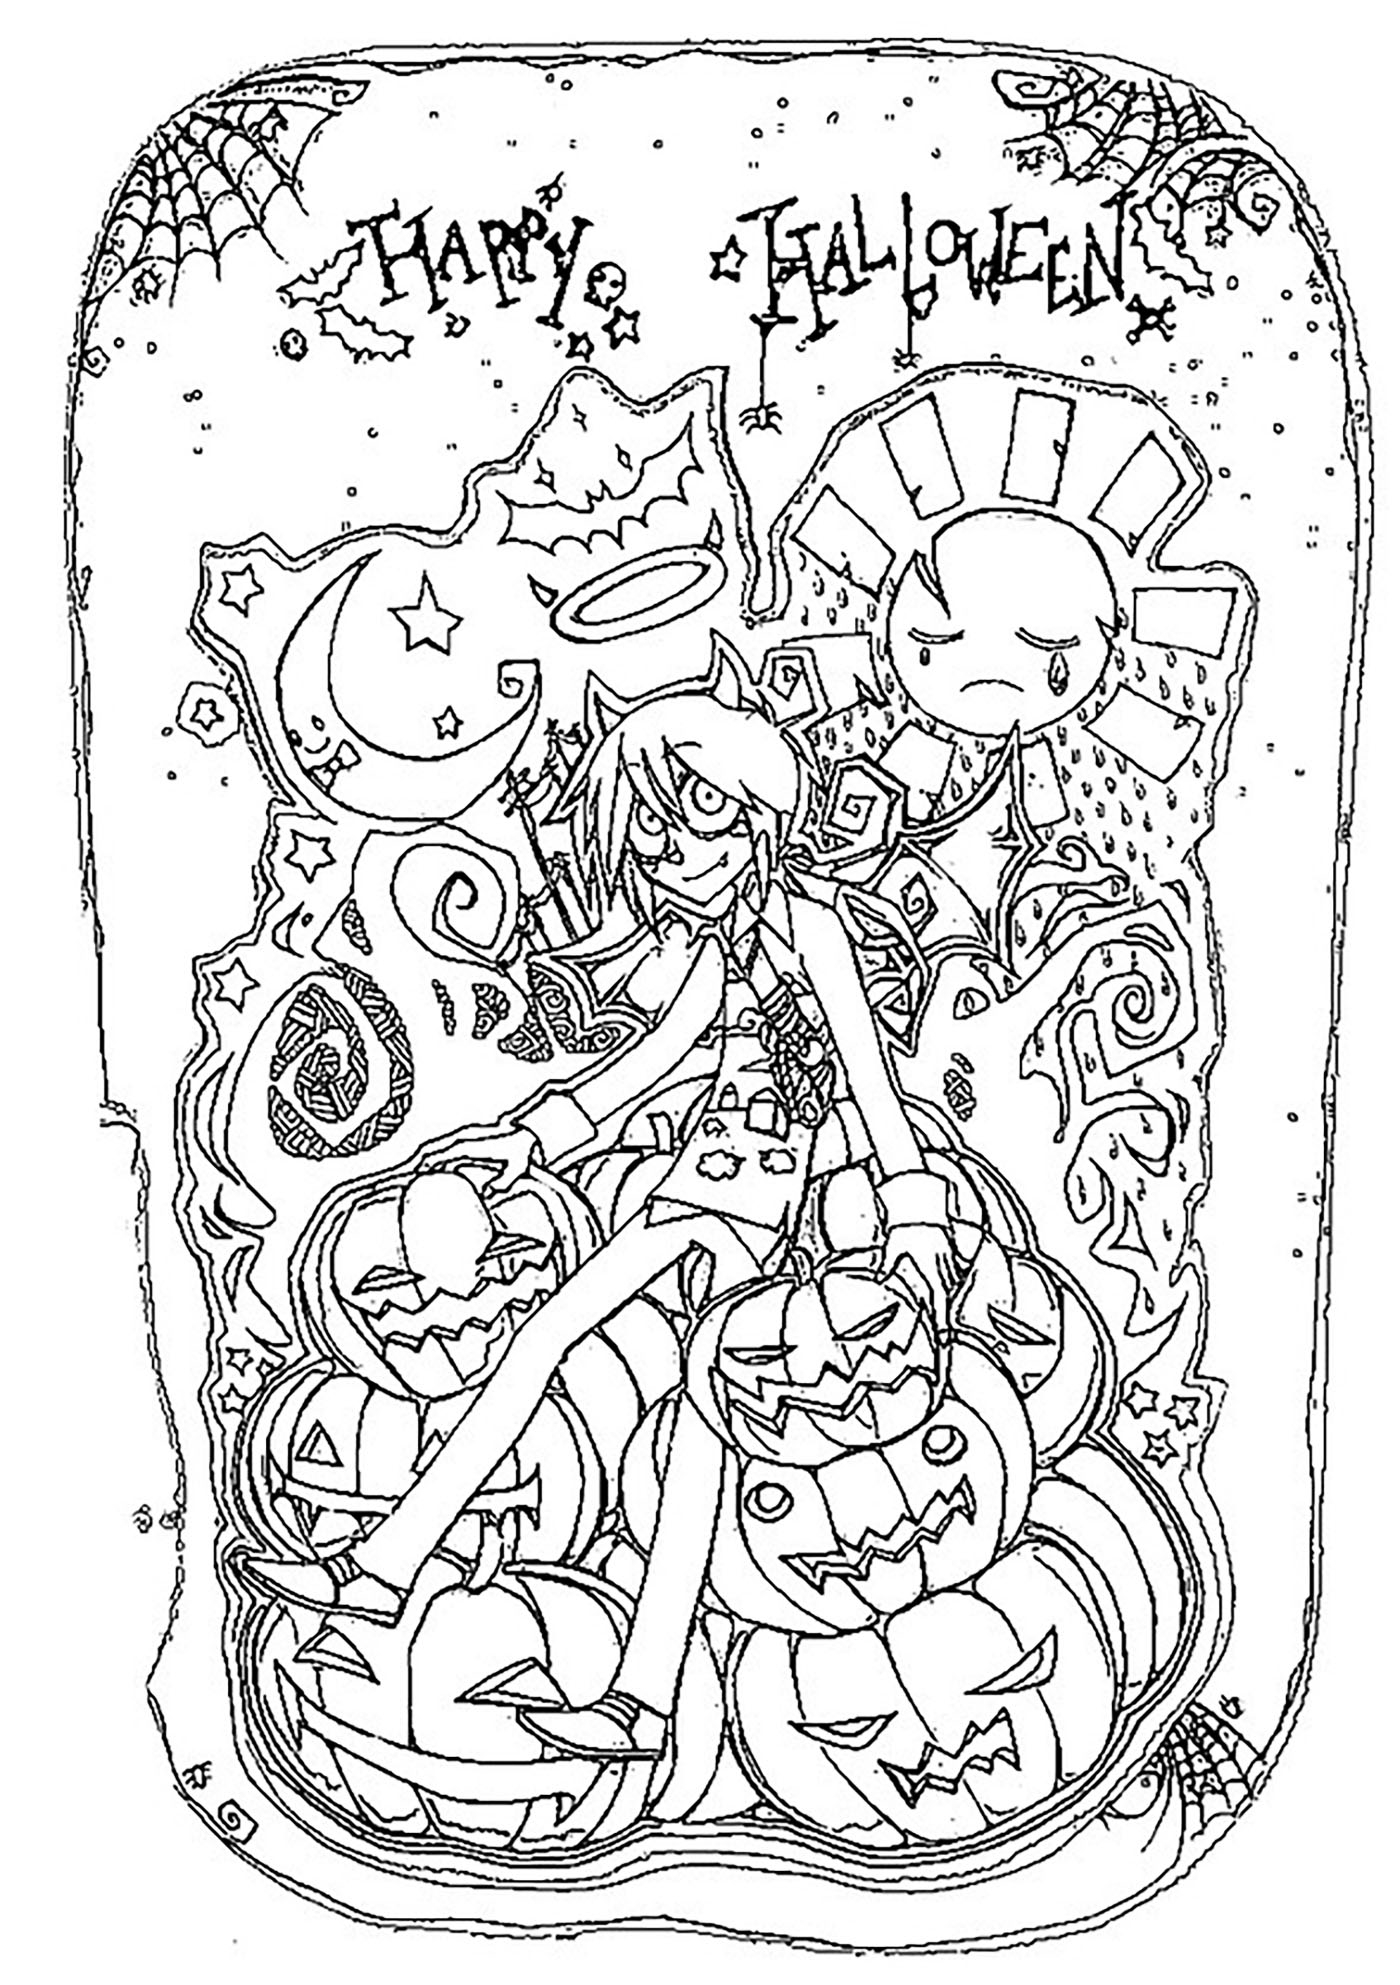 Barbie Halloween Coloring Pages Halloween Happy Halloween Halloween Adult Coloring Pages